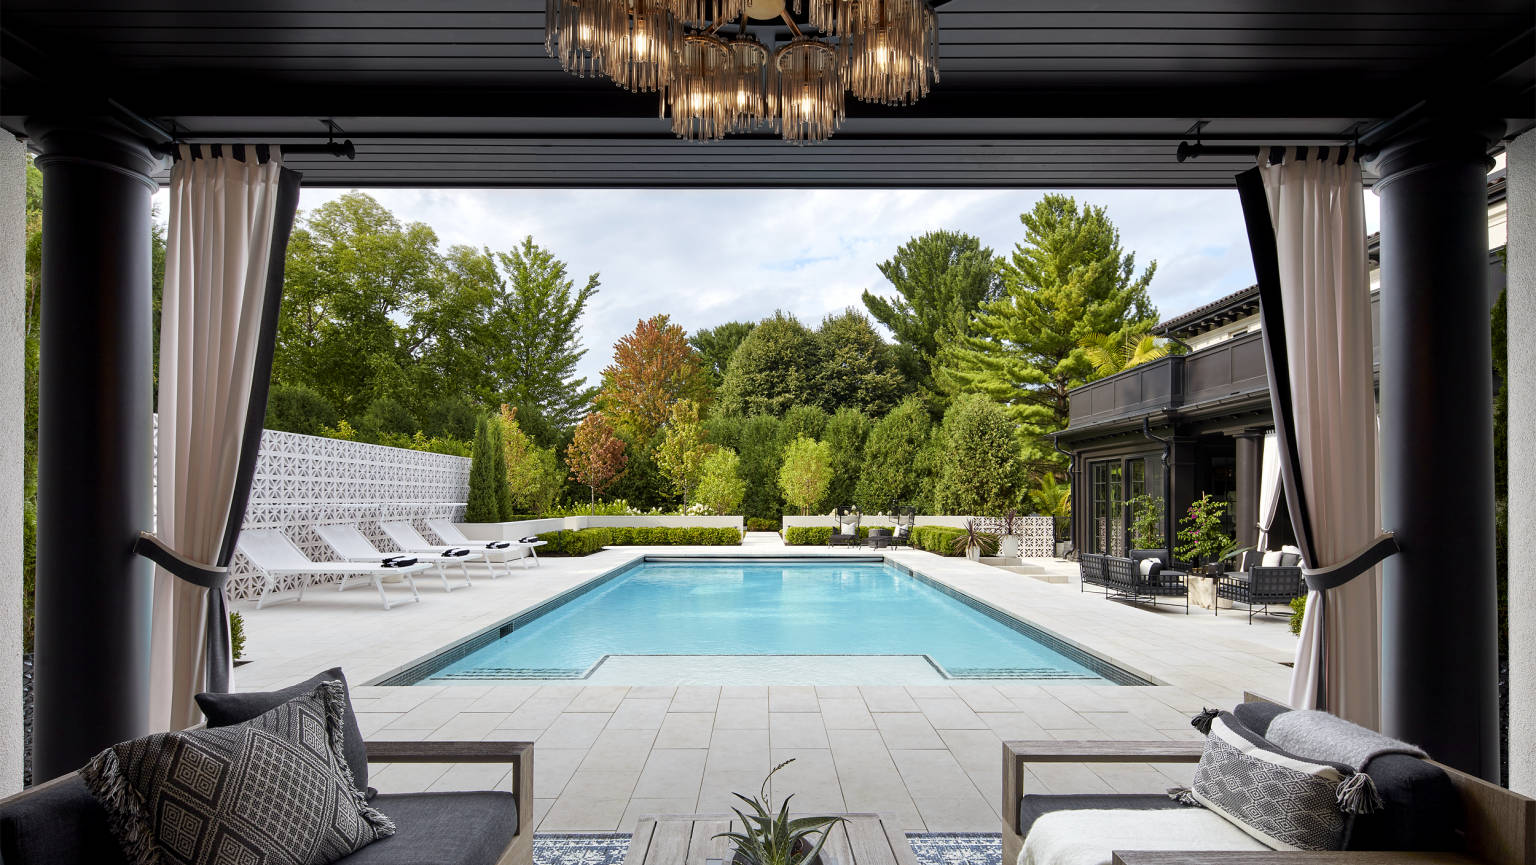 cabana view of pool by Charlie and Co. Design